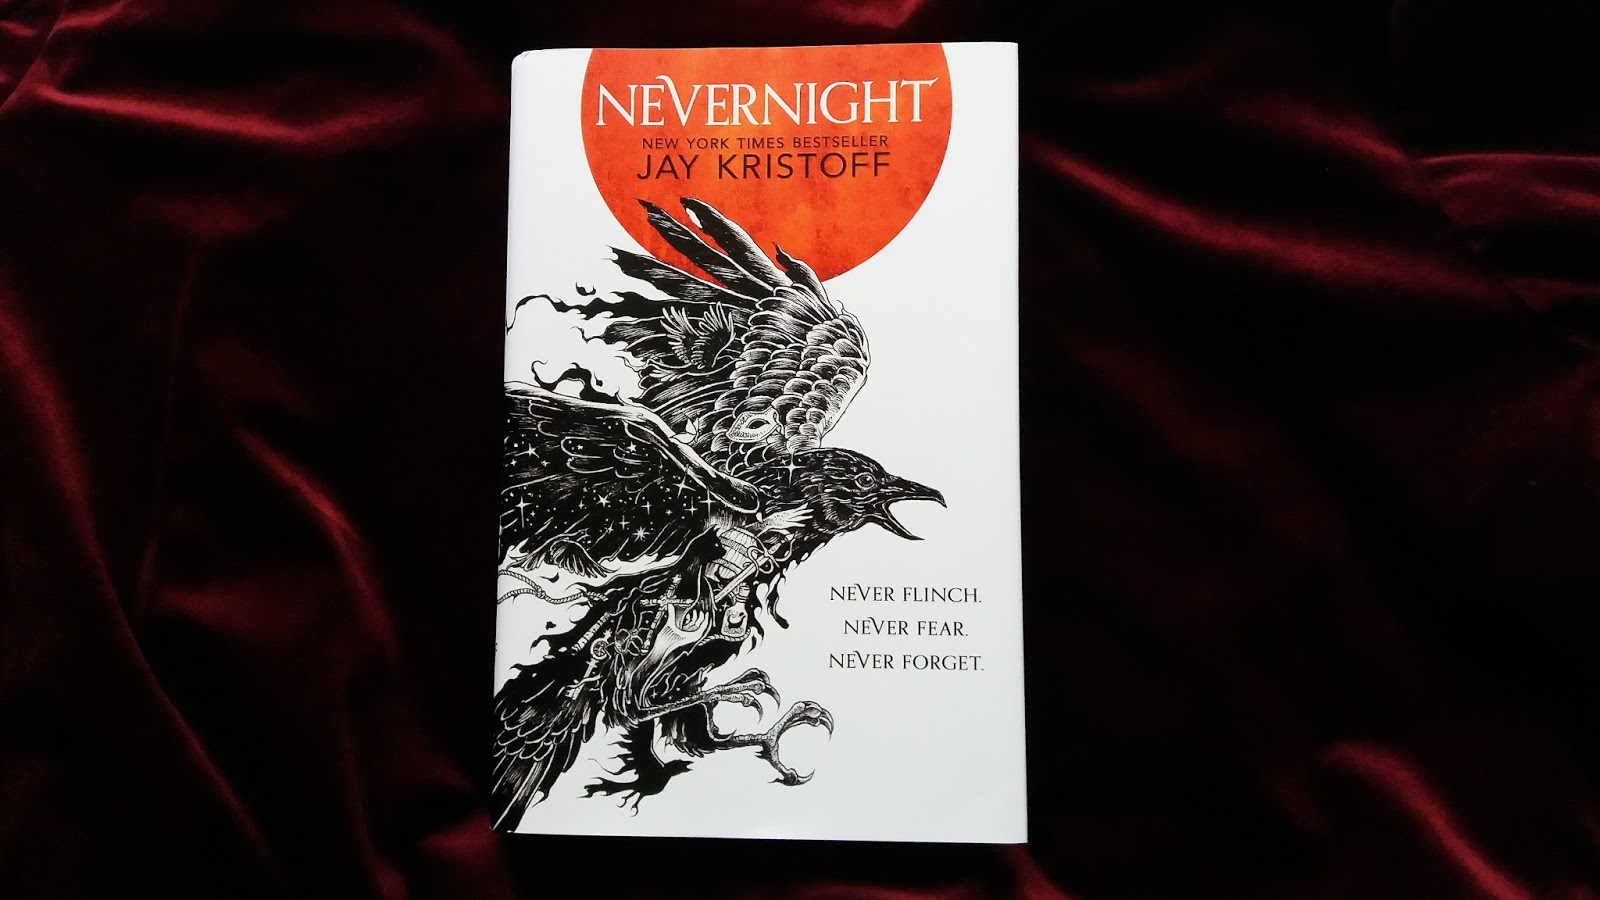 Nevernight by Jay Kristoff Review